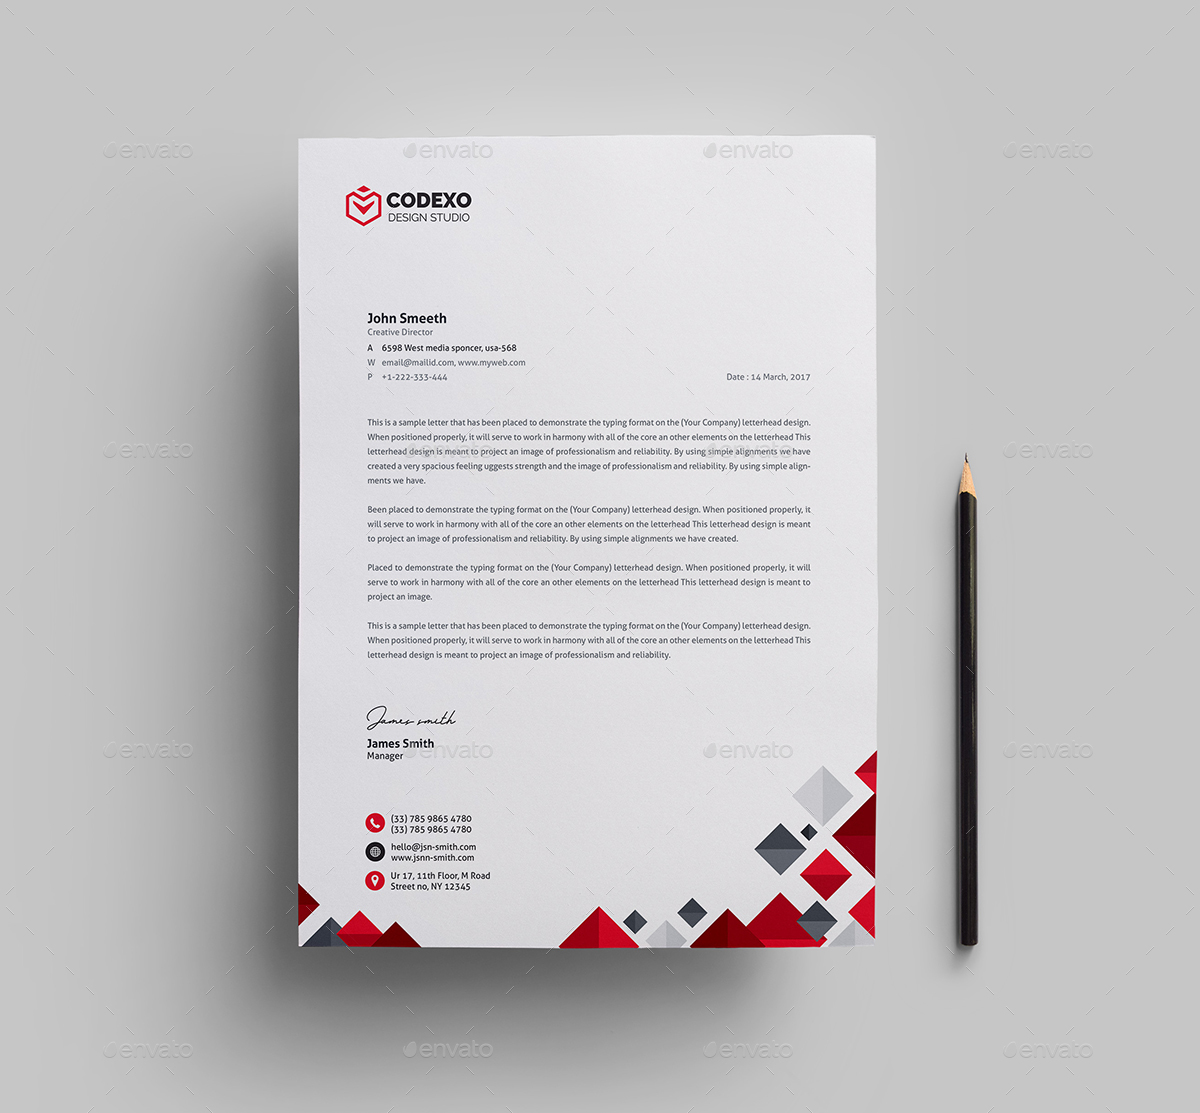 Letterhead Bundle_ 2 in 1 by generousart | GraphicRiver